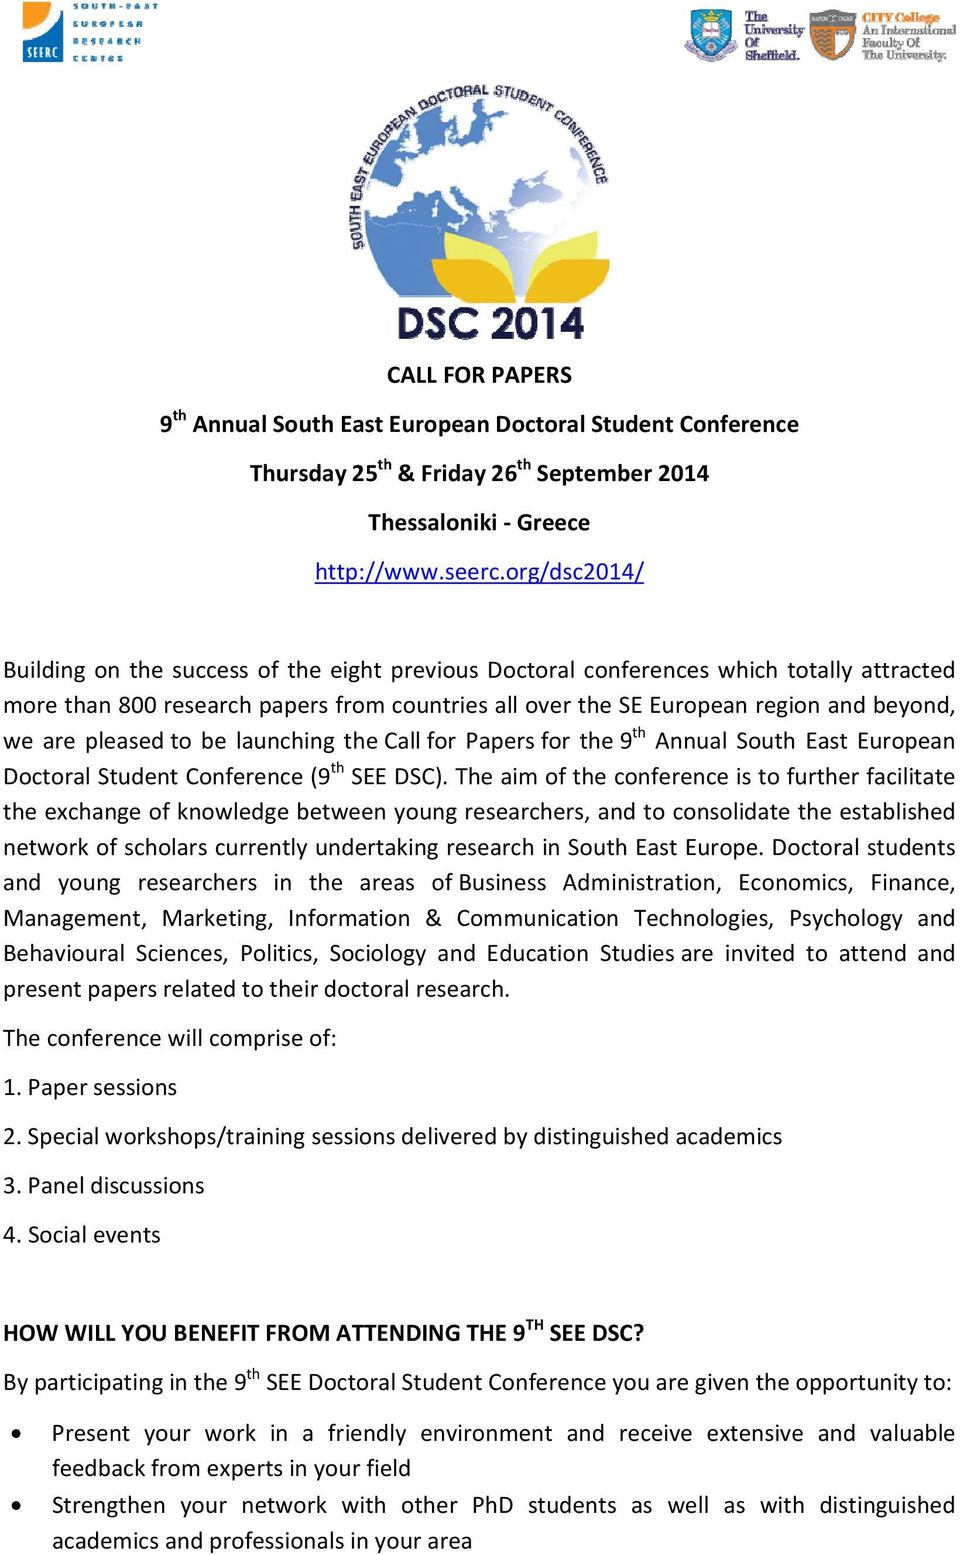 pleased to be launching the Call for Papers for the 9 th Annual South East European Doctoral Student Conference (9 th SEE DSC).